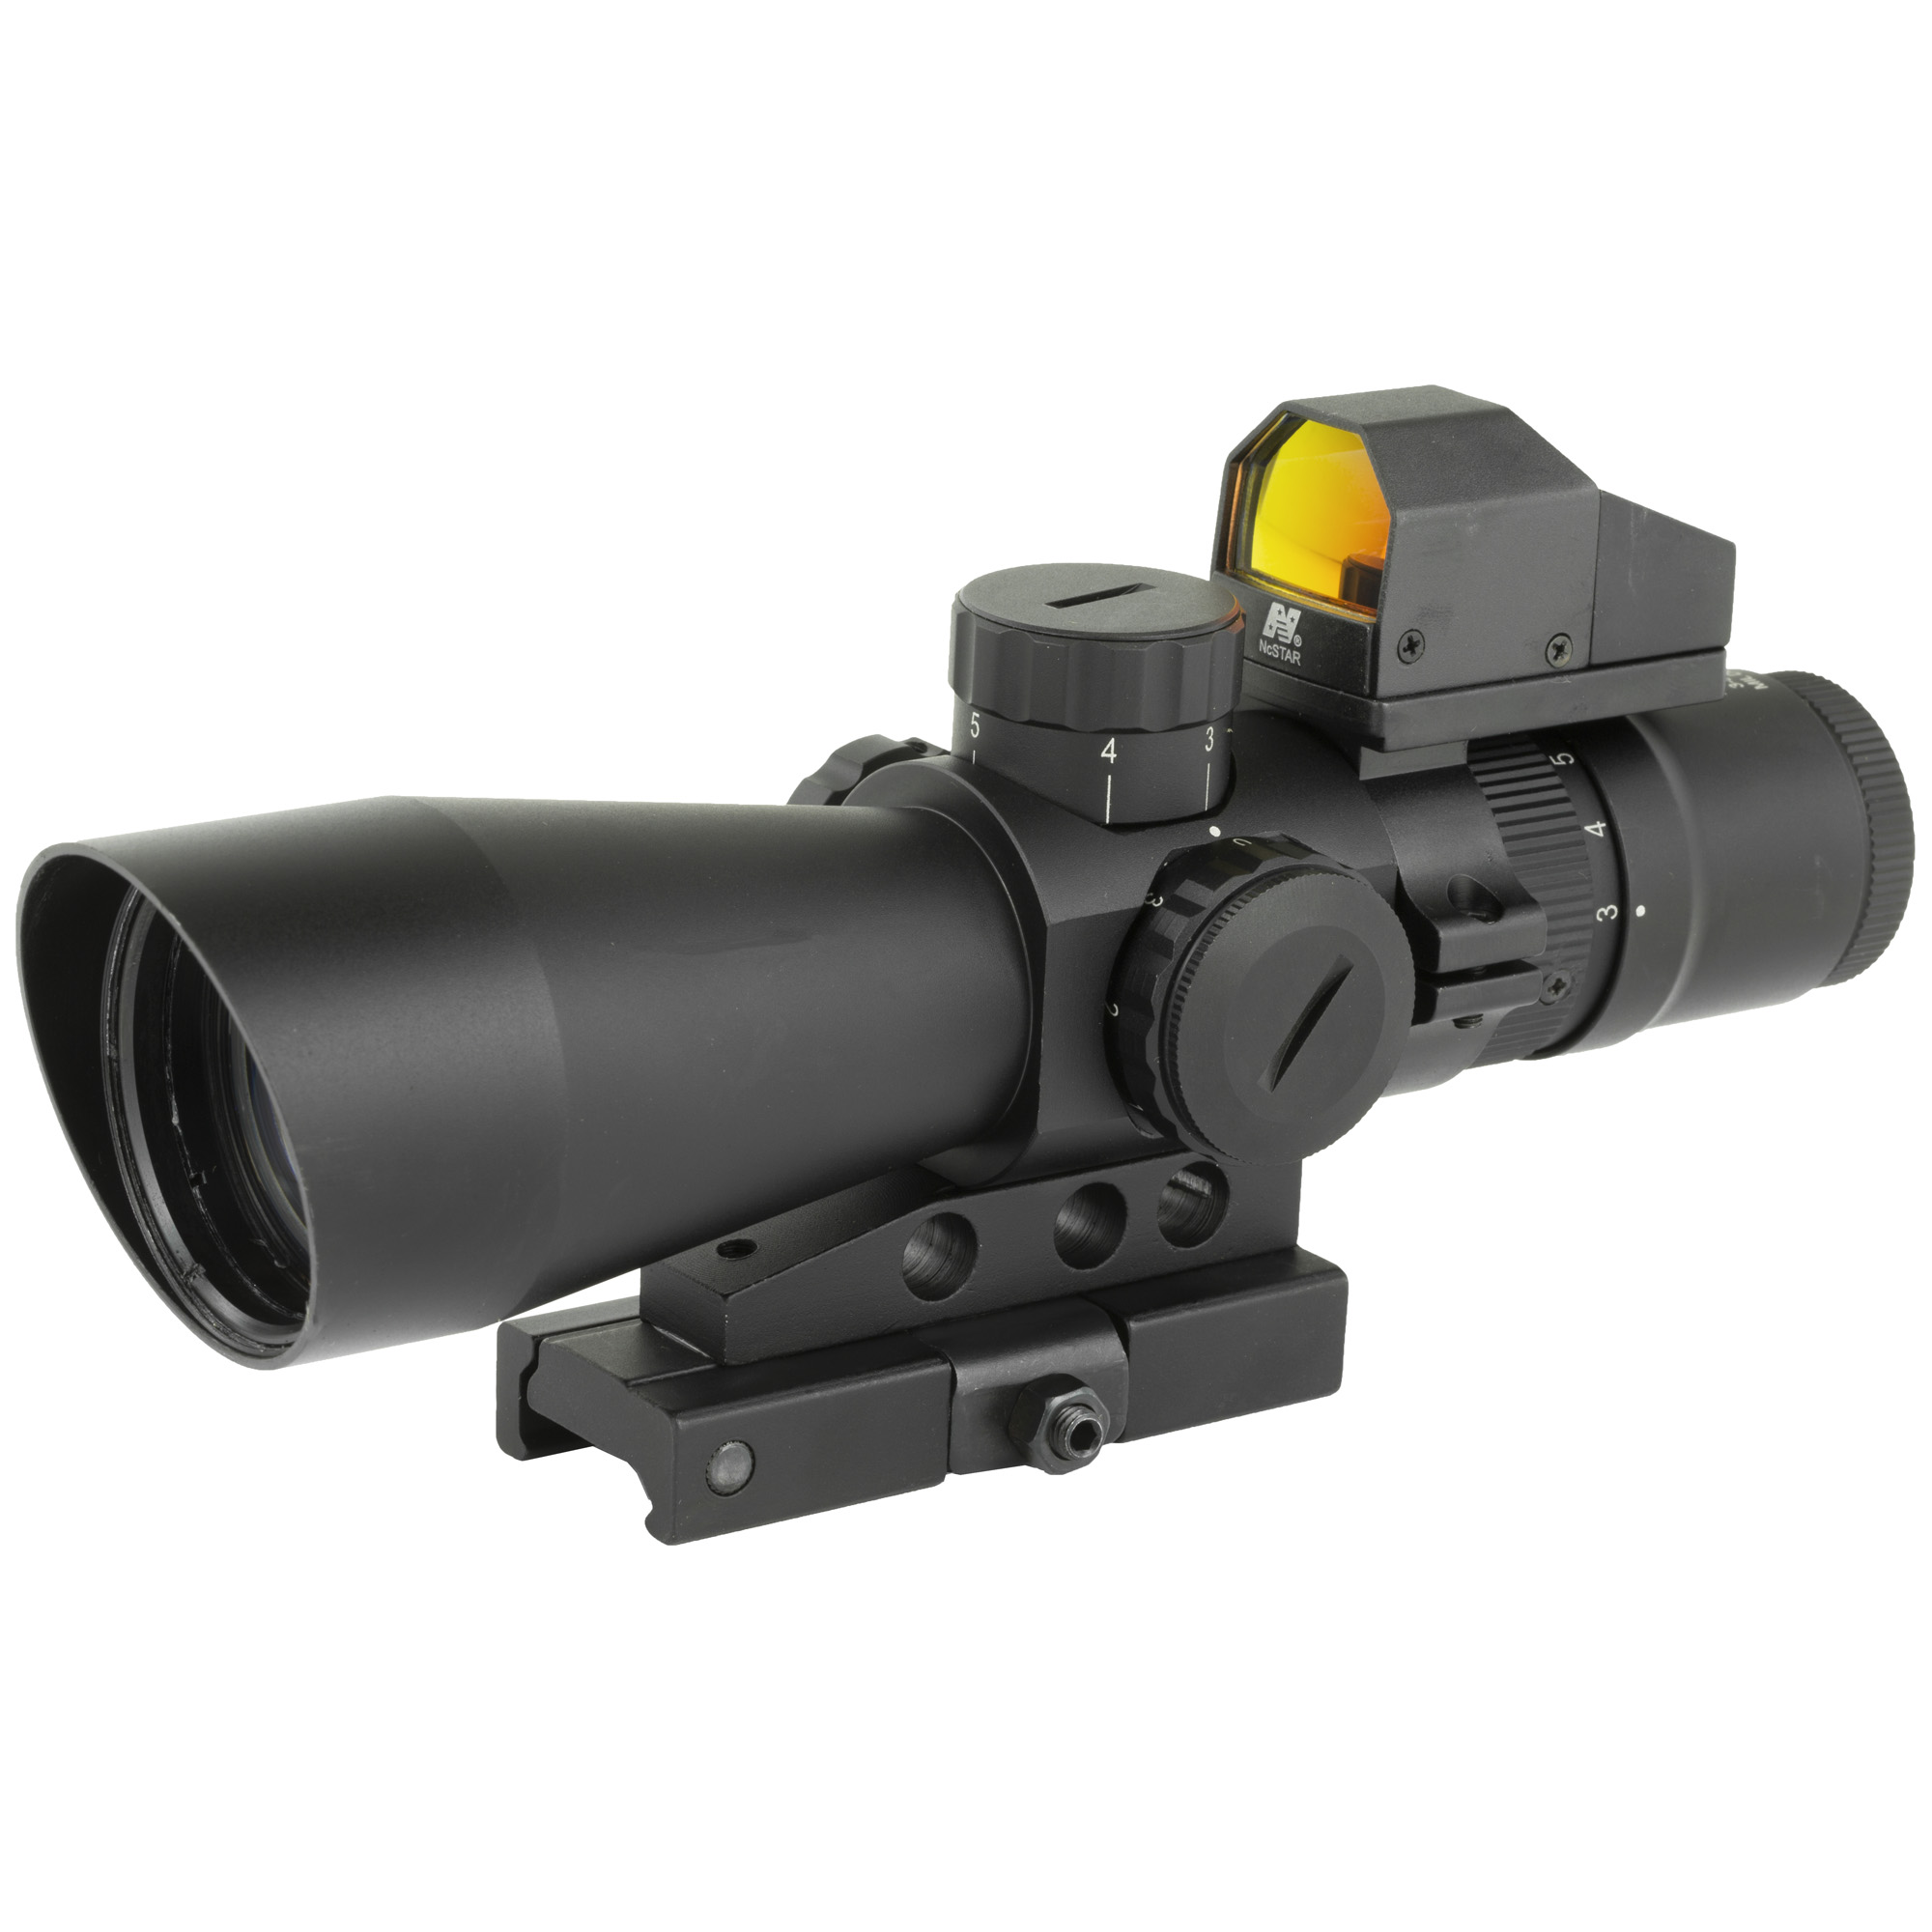 NcSTAR USS Gen II 3-9x42mm Riflescope Illuminated Mil-Dot Reticle Micro Red Dot 0.5 MOA Adjustments Second Focal Plane Mount Included